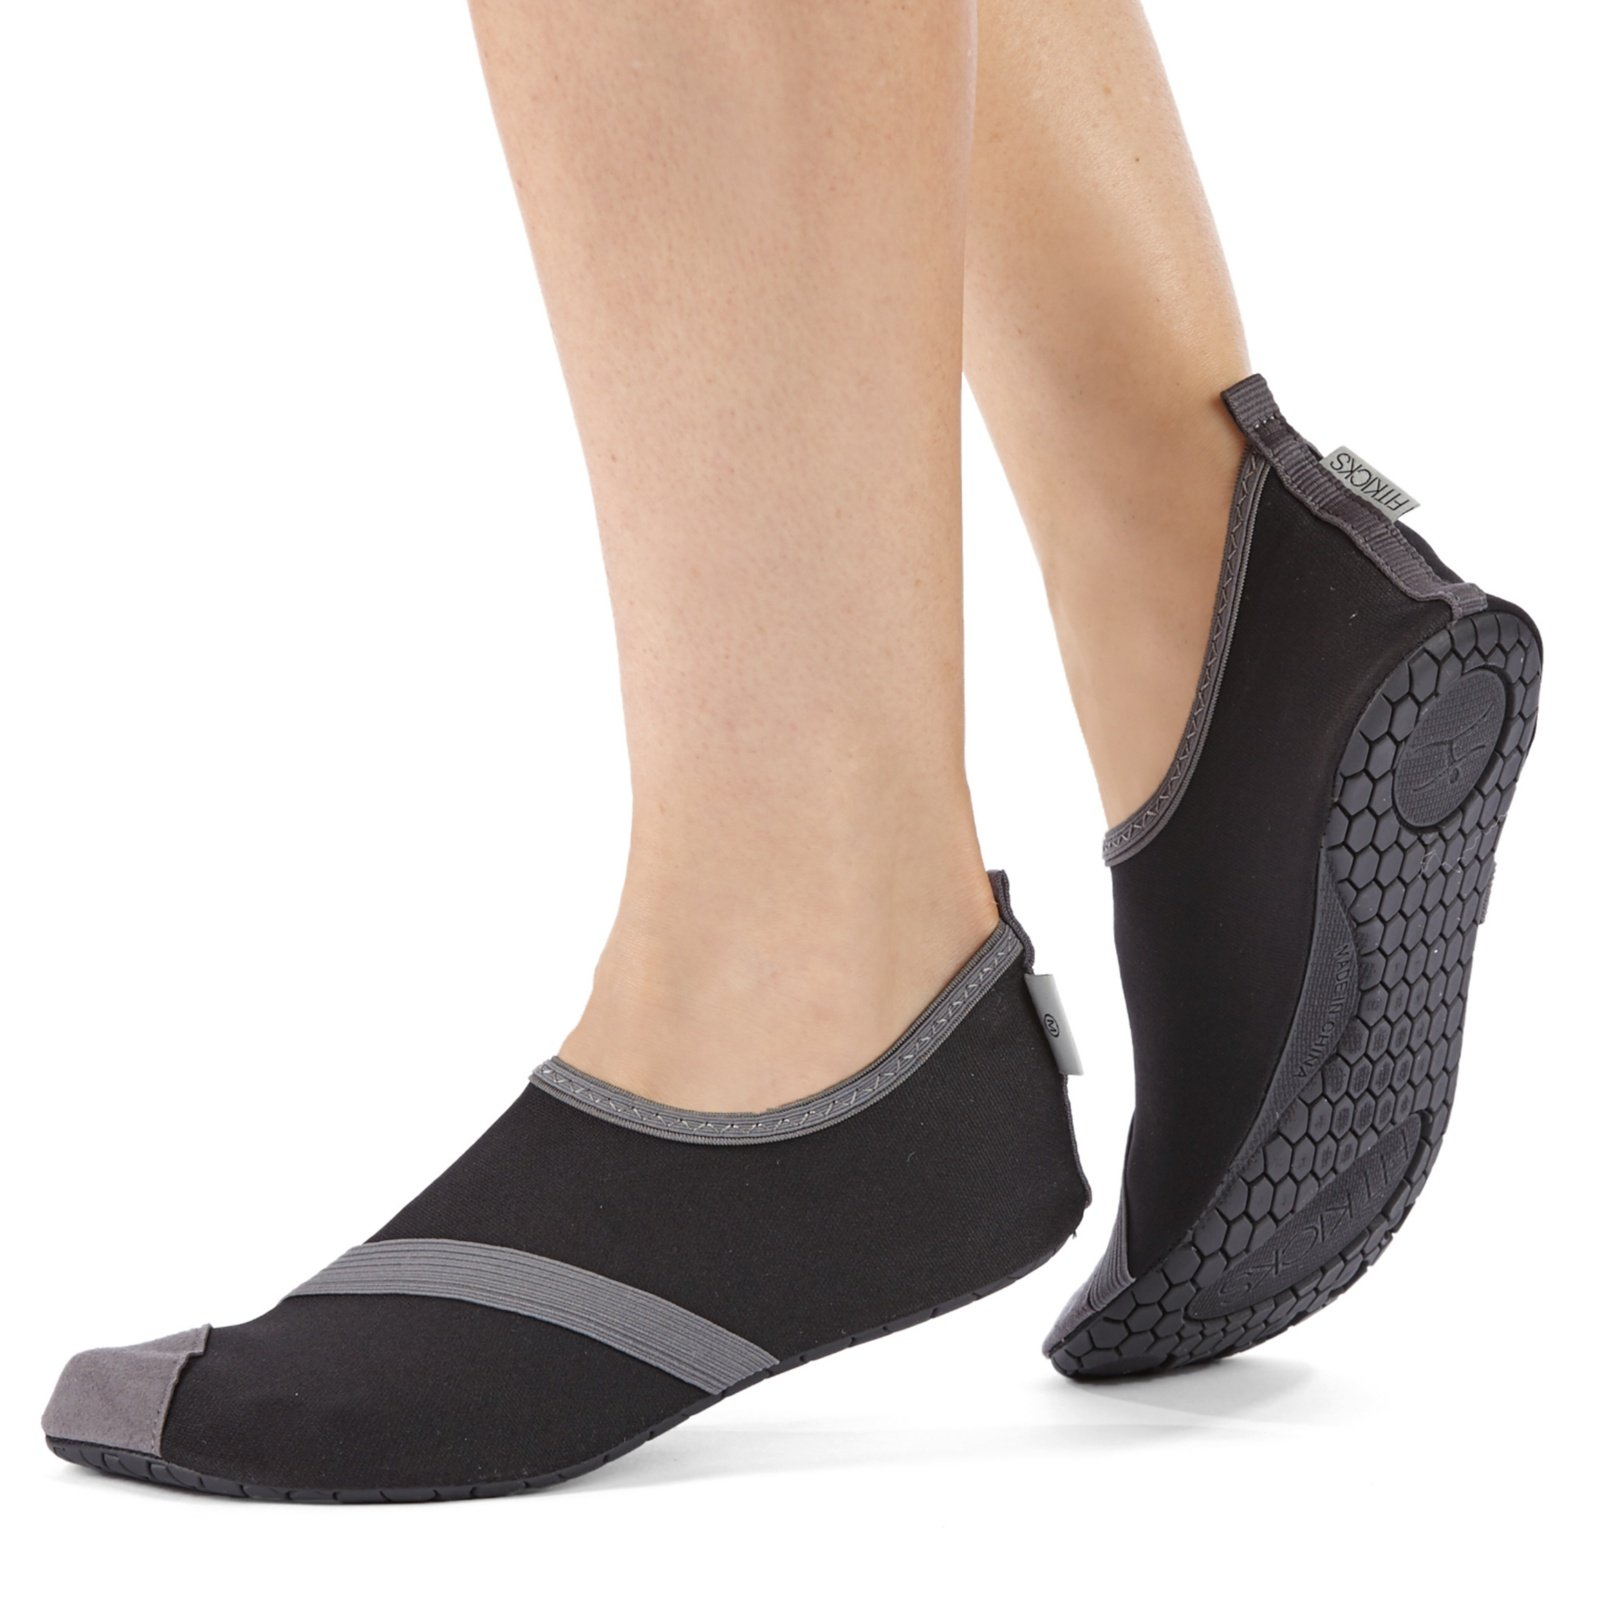 Yoga And Shoes: FitKicks Active Footwear YOGA SHOES SLIPPERS For Women